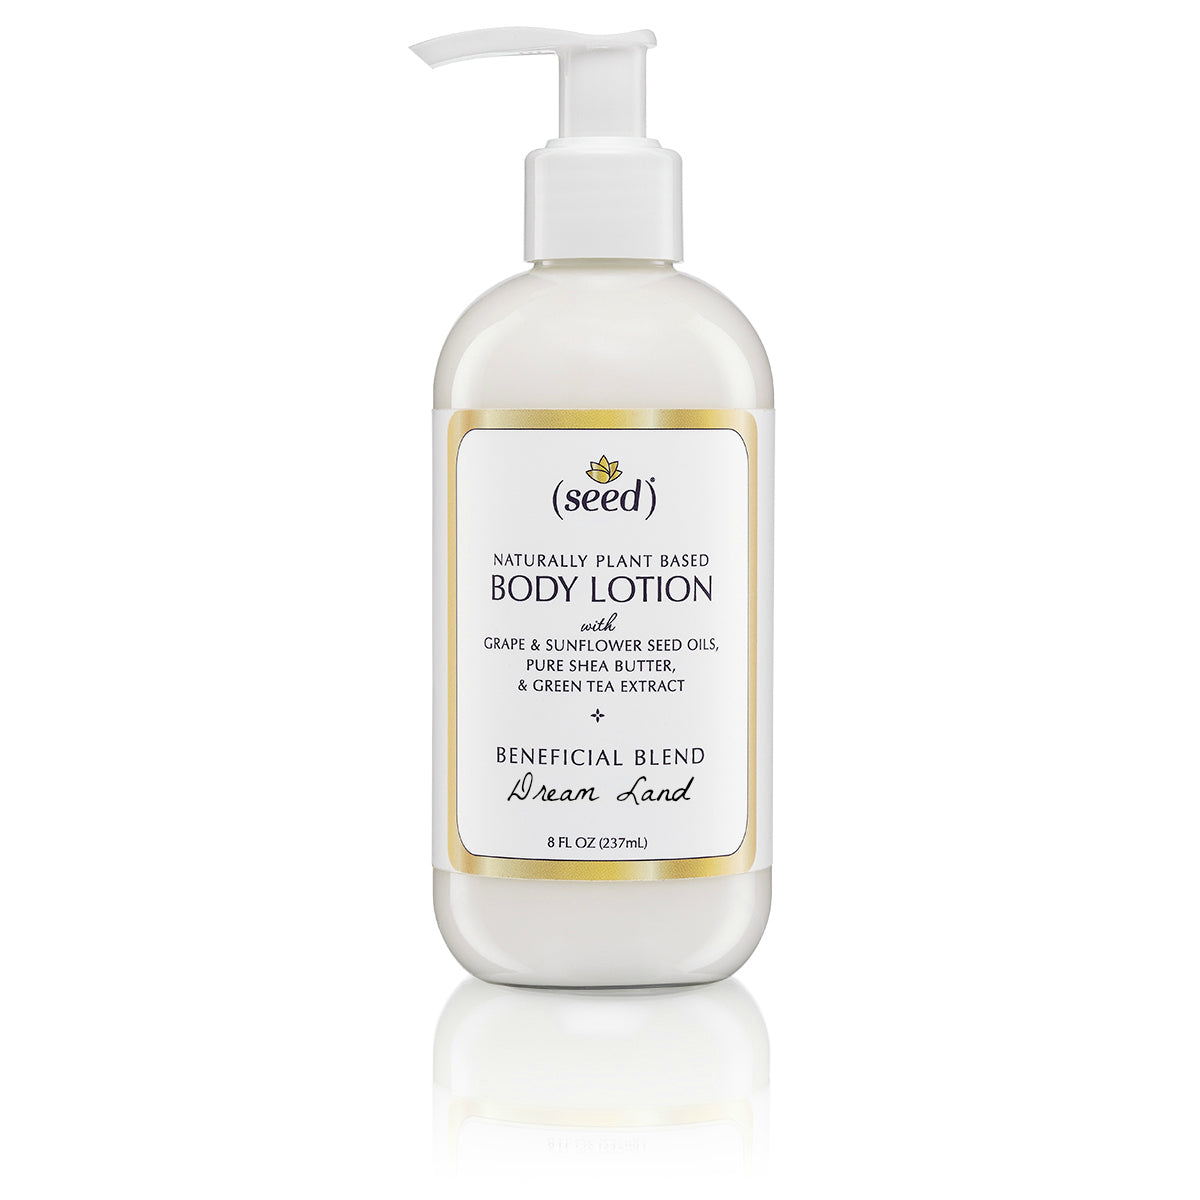 Seed Dream Land Blend Body Lotion 8 oz with lavender, lemon, and ginger essential oils